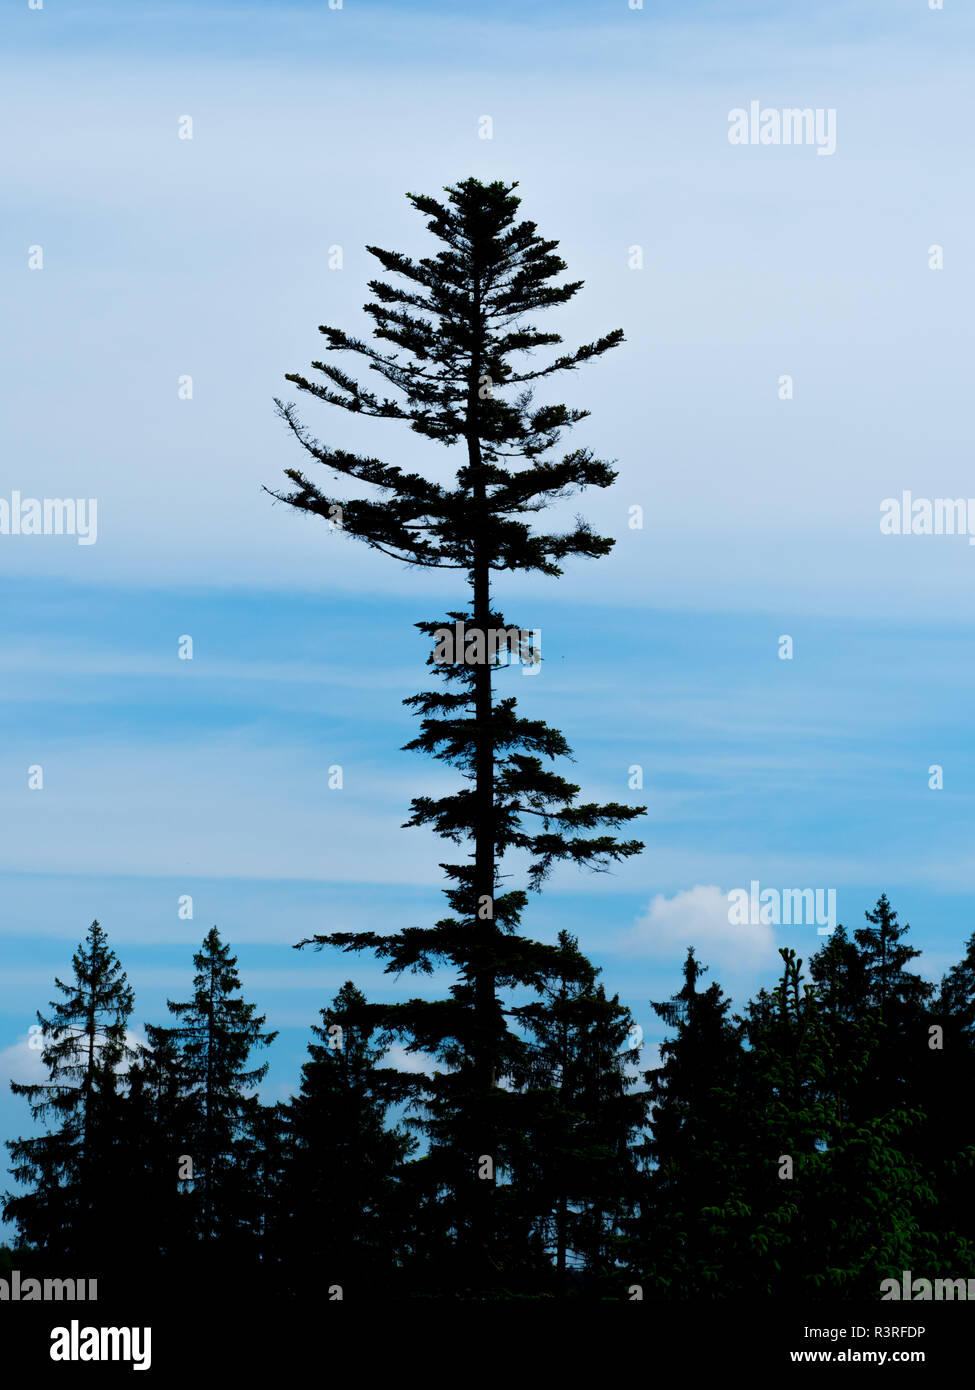 Silhouette of conifers - Stock Image